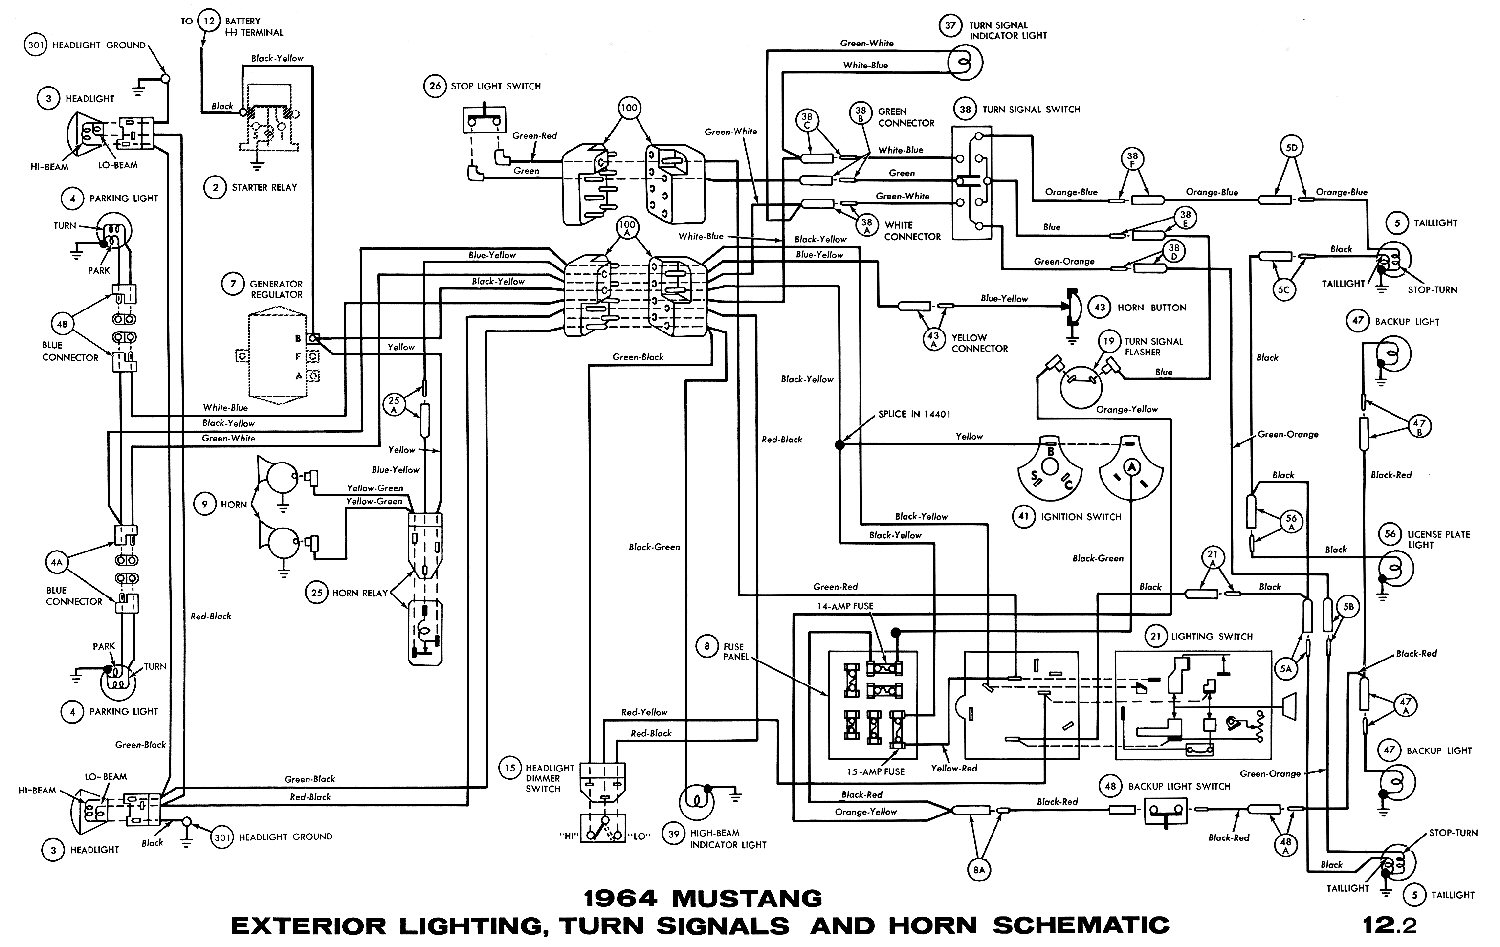 1964i 1964 mustang wiring diagrams average joe restoration 1968 mustang turn signal wiring diagram at edmiracle.co